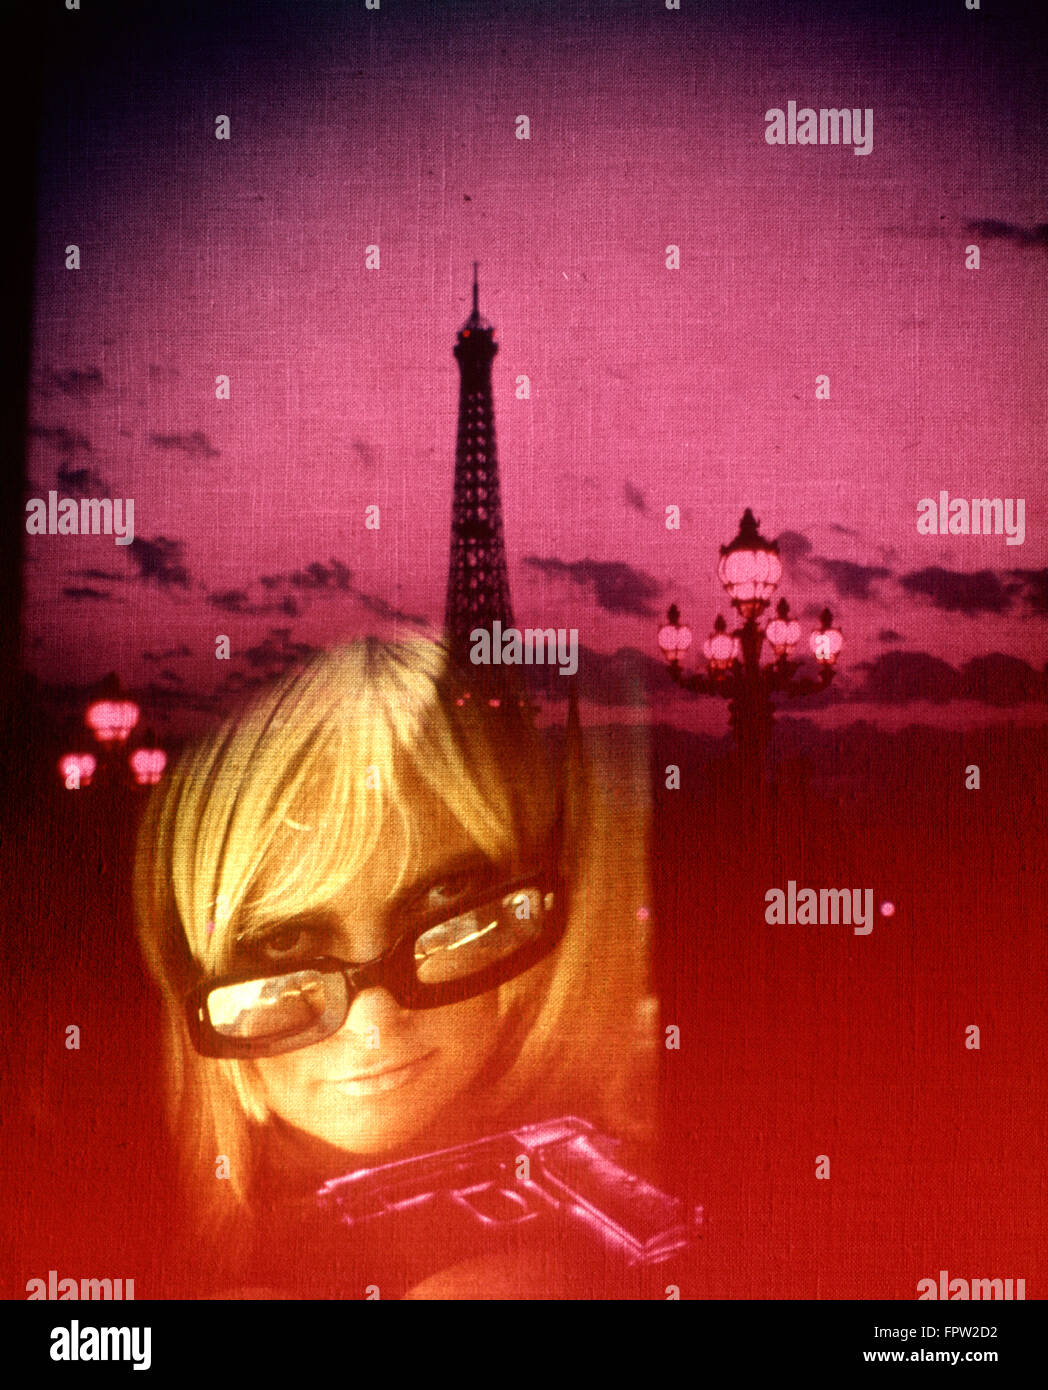 1970s SPECIAL EFFECT BLOND BLONDE WOMAN SUNGLASSES GUN EIFFEL TOWER PARIS MYSTERY SPY STORY INTRIGUE Stock Photo